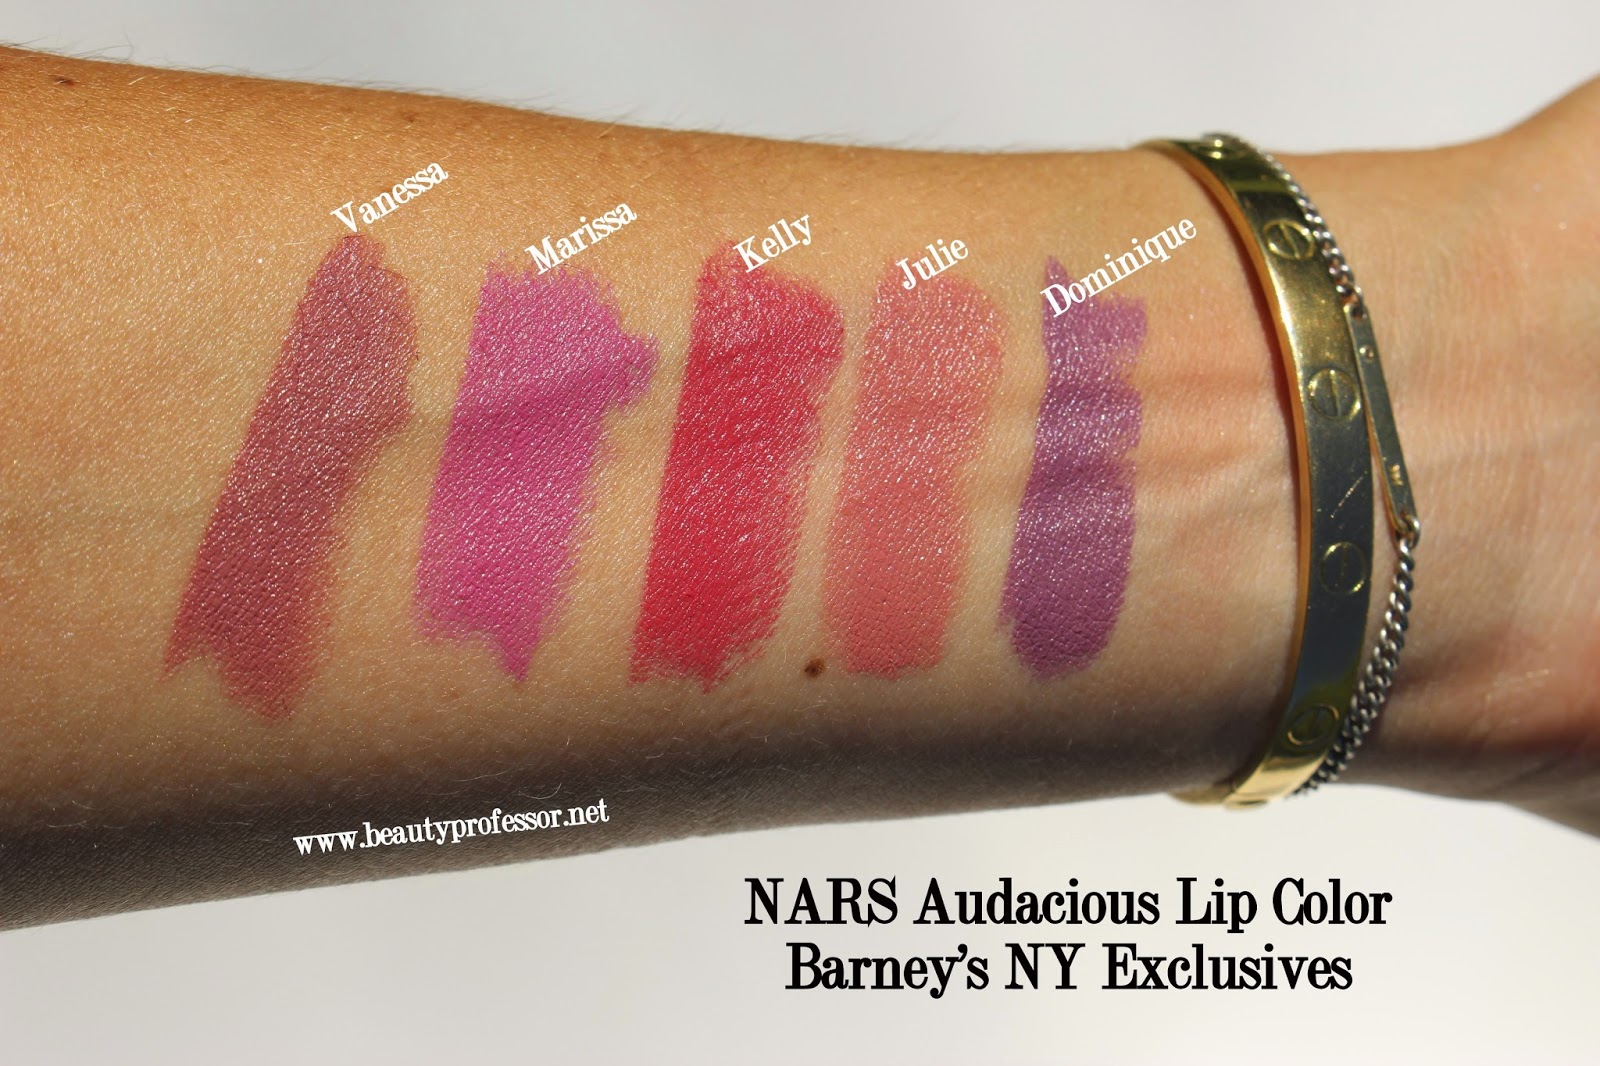 Populaire Beauty Professor: NARS Audacious LipstickSwatches of My Selections! ZV34